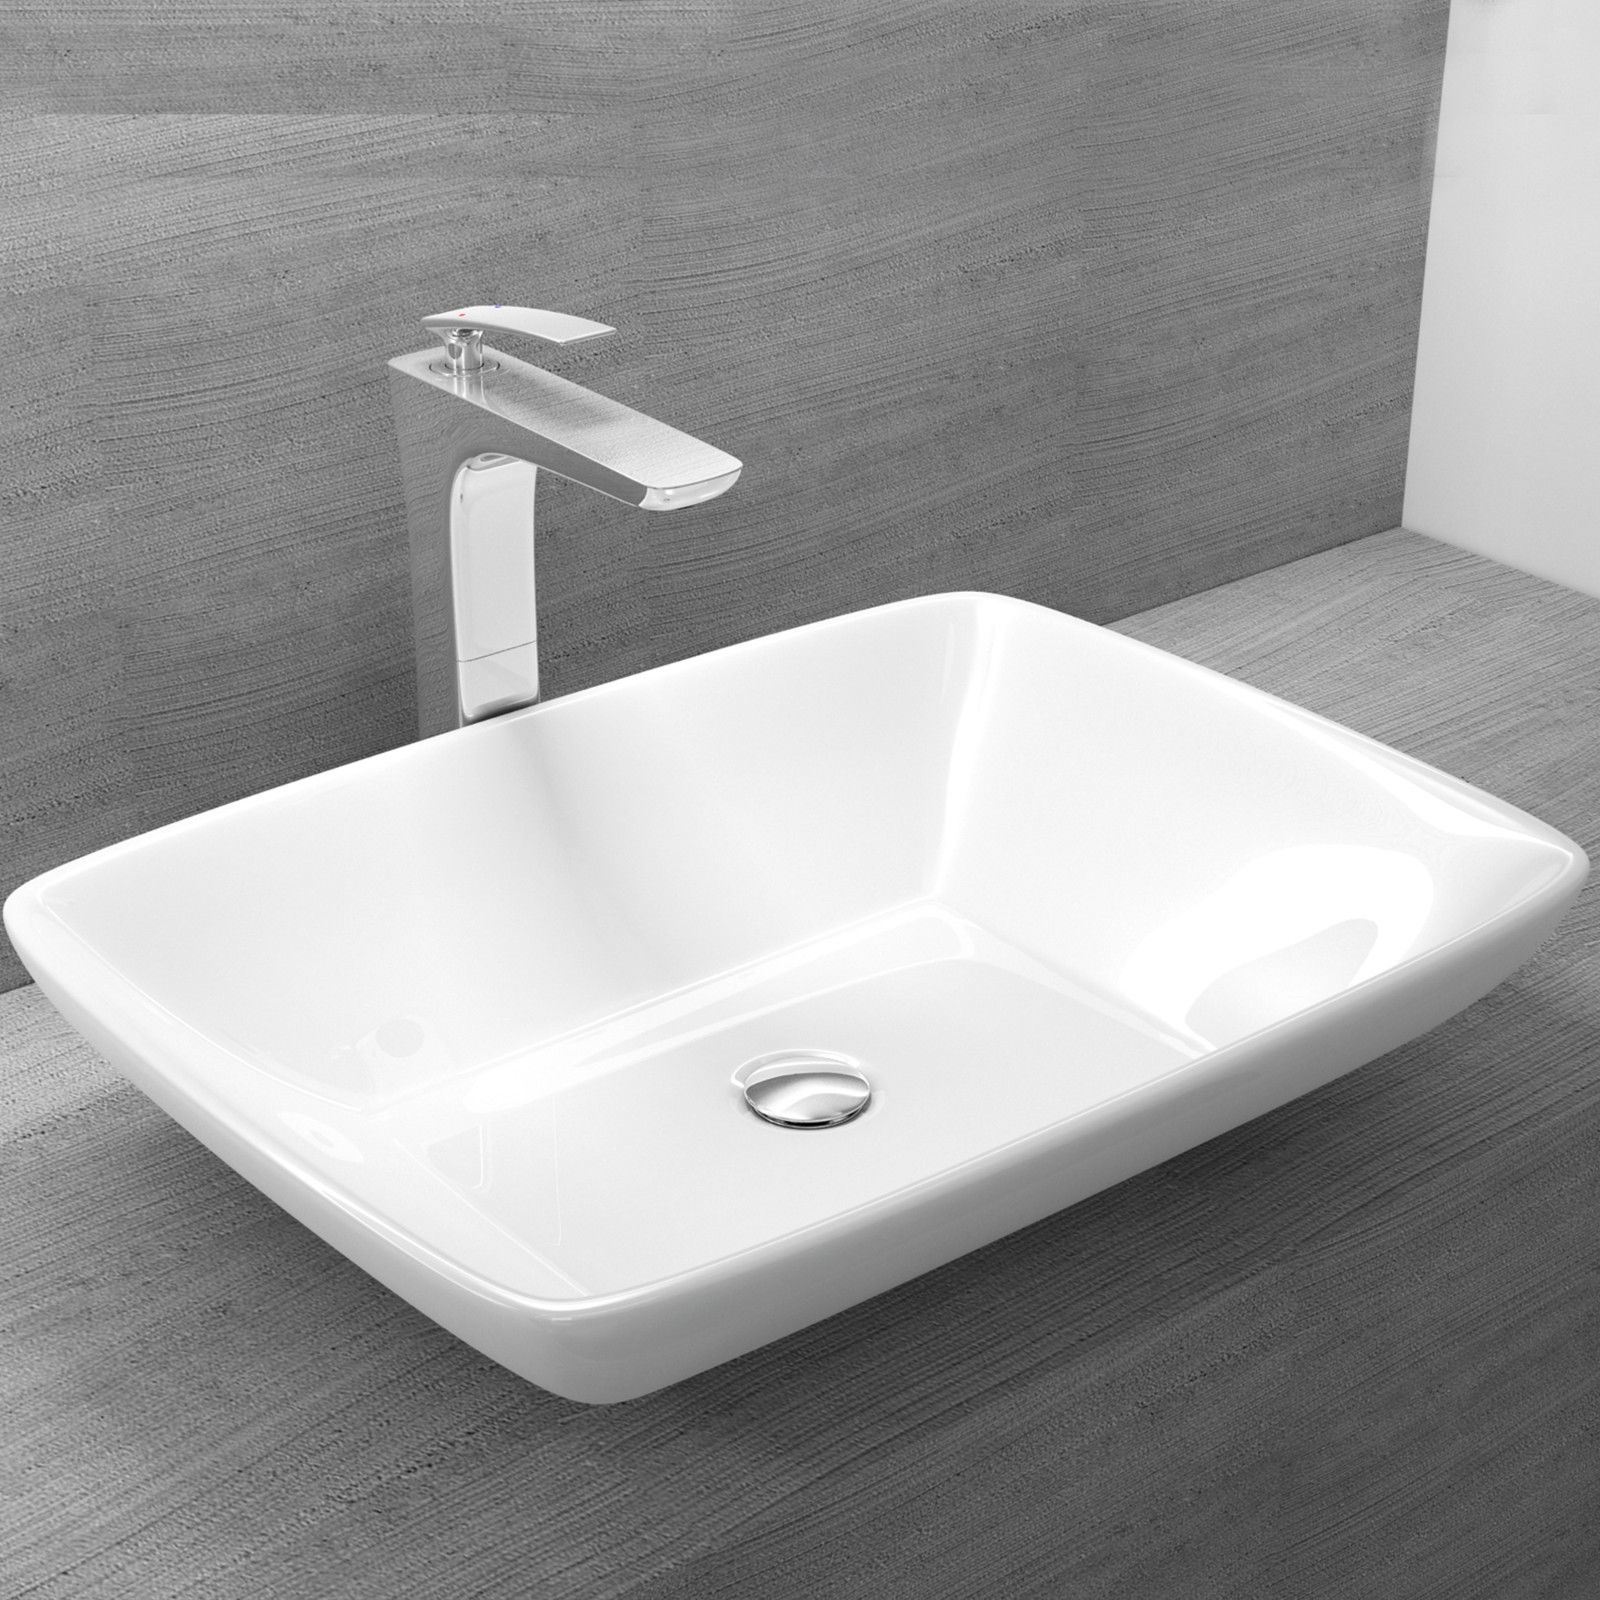 Marble Basin Countertop Durovin Countertop And Wall Hung Sink Gloss White Cast